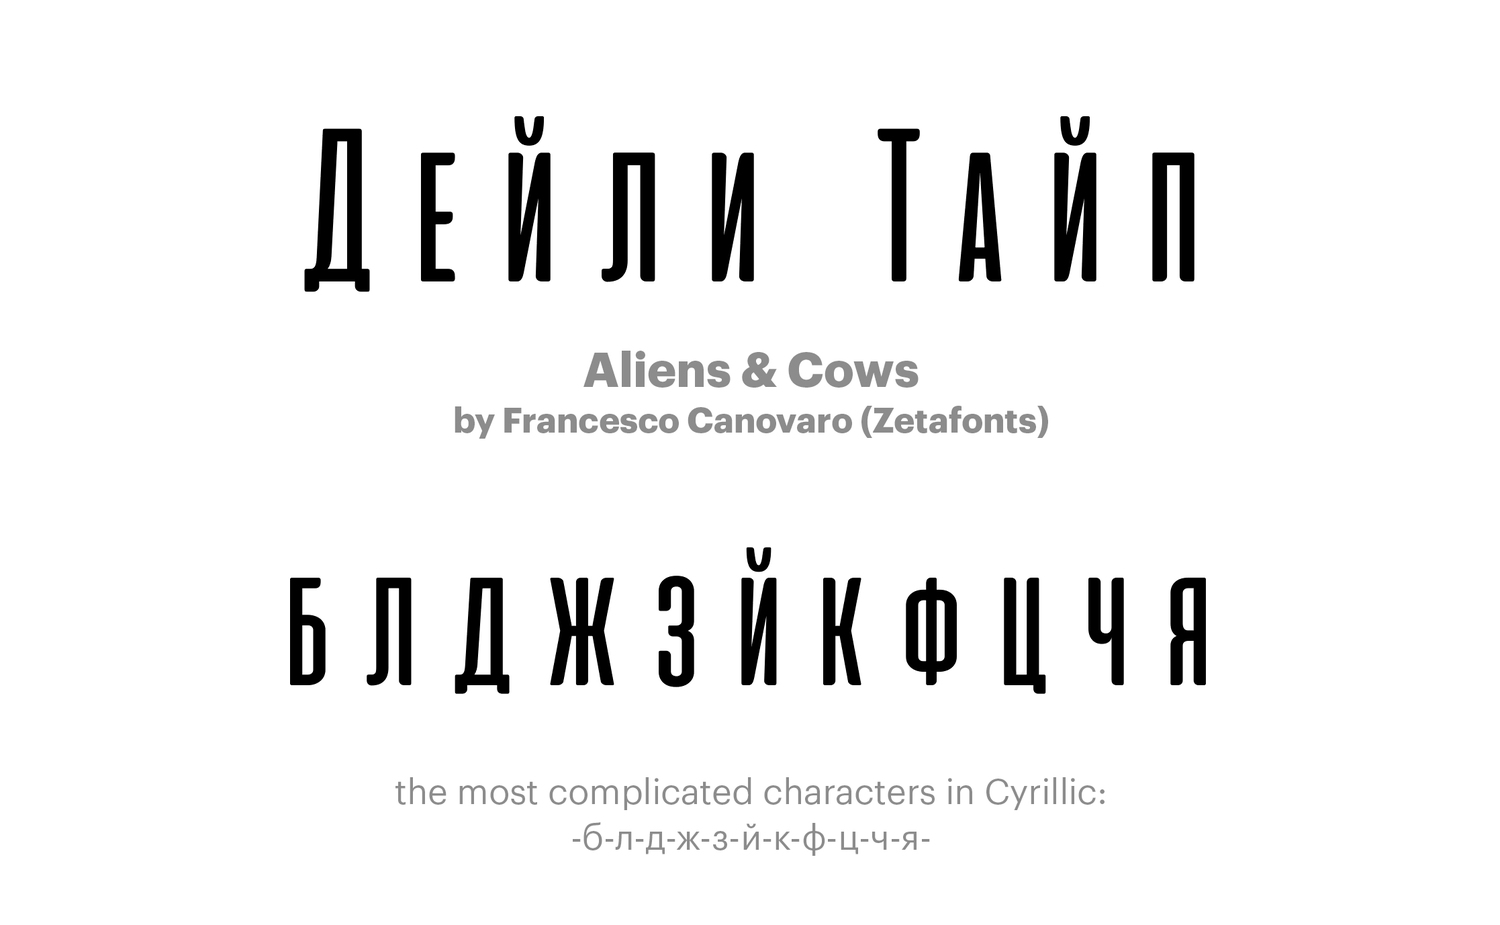 Aliens-&-Cows-by-Francesco-Canovaro-(Zetafonts)